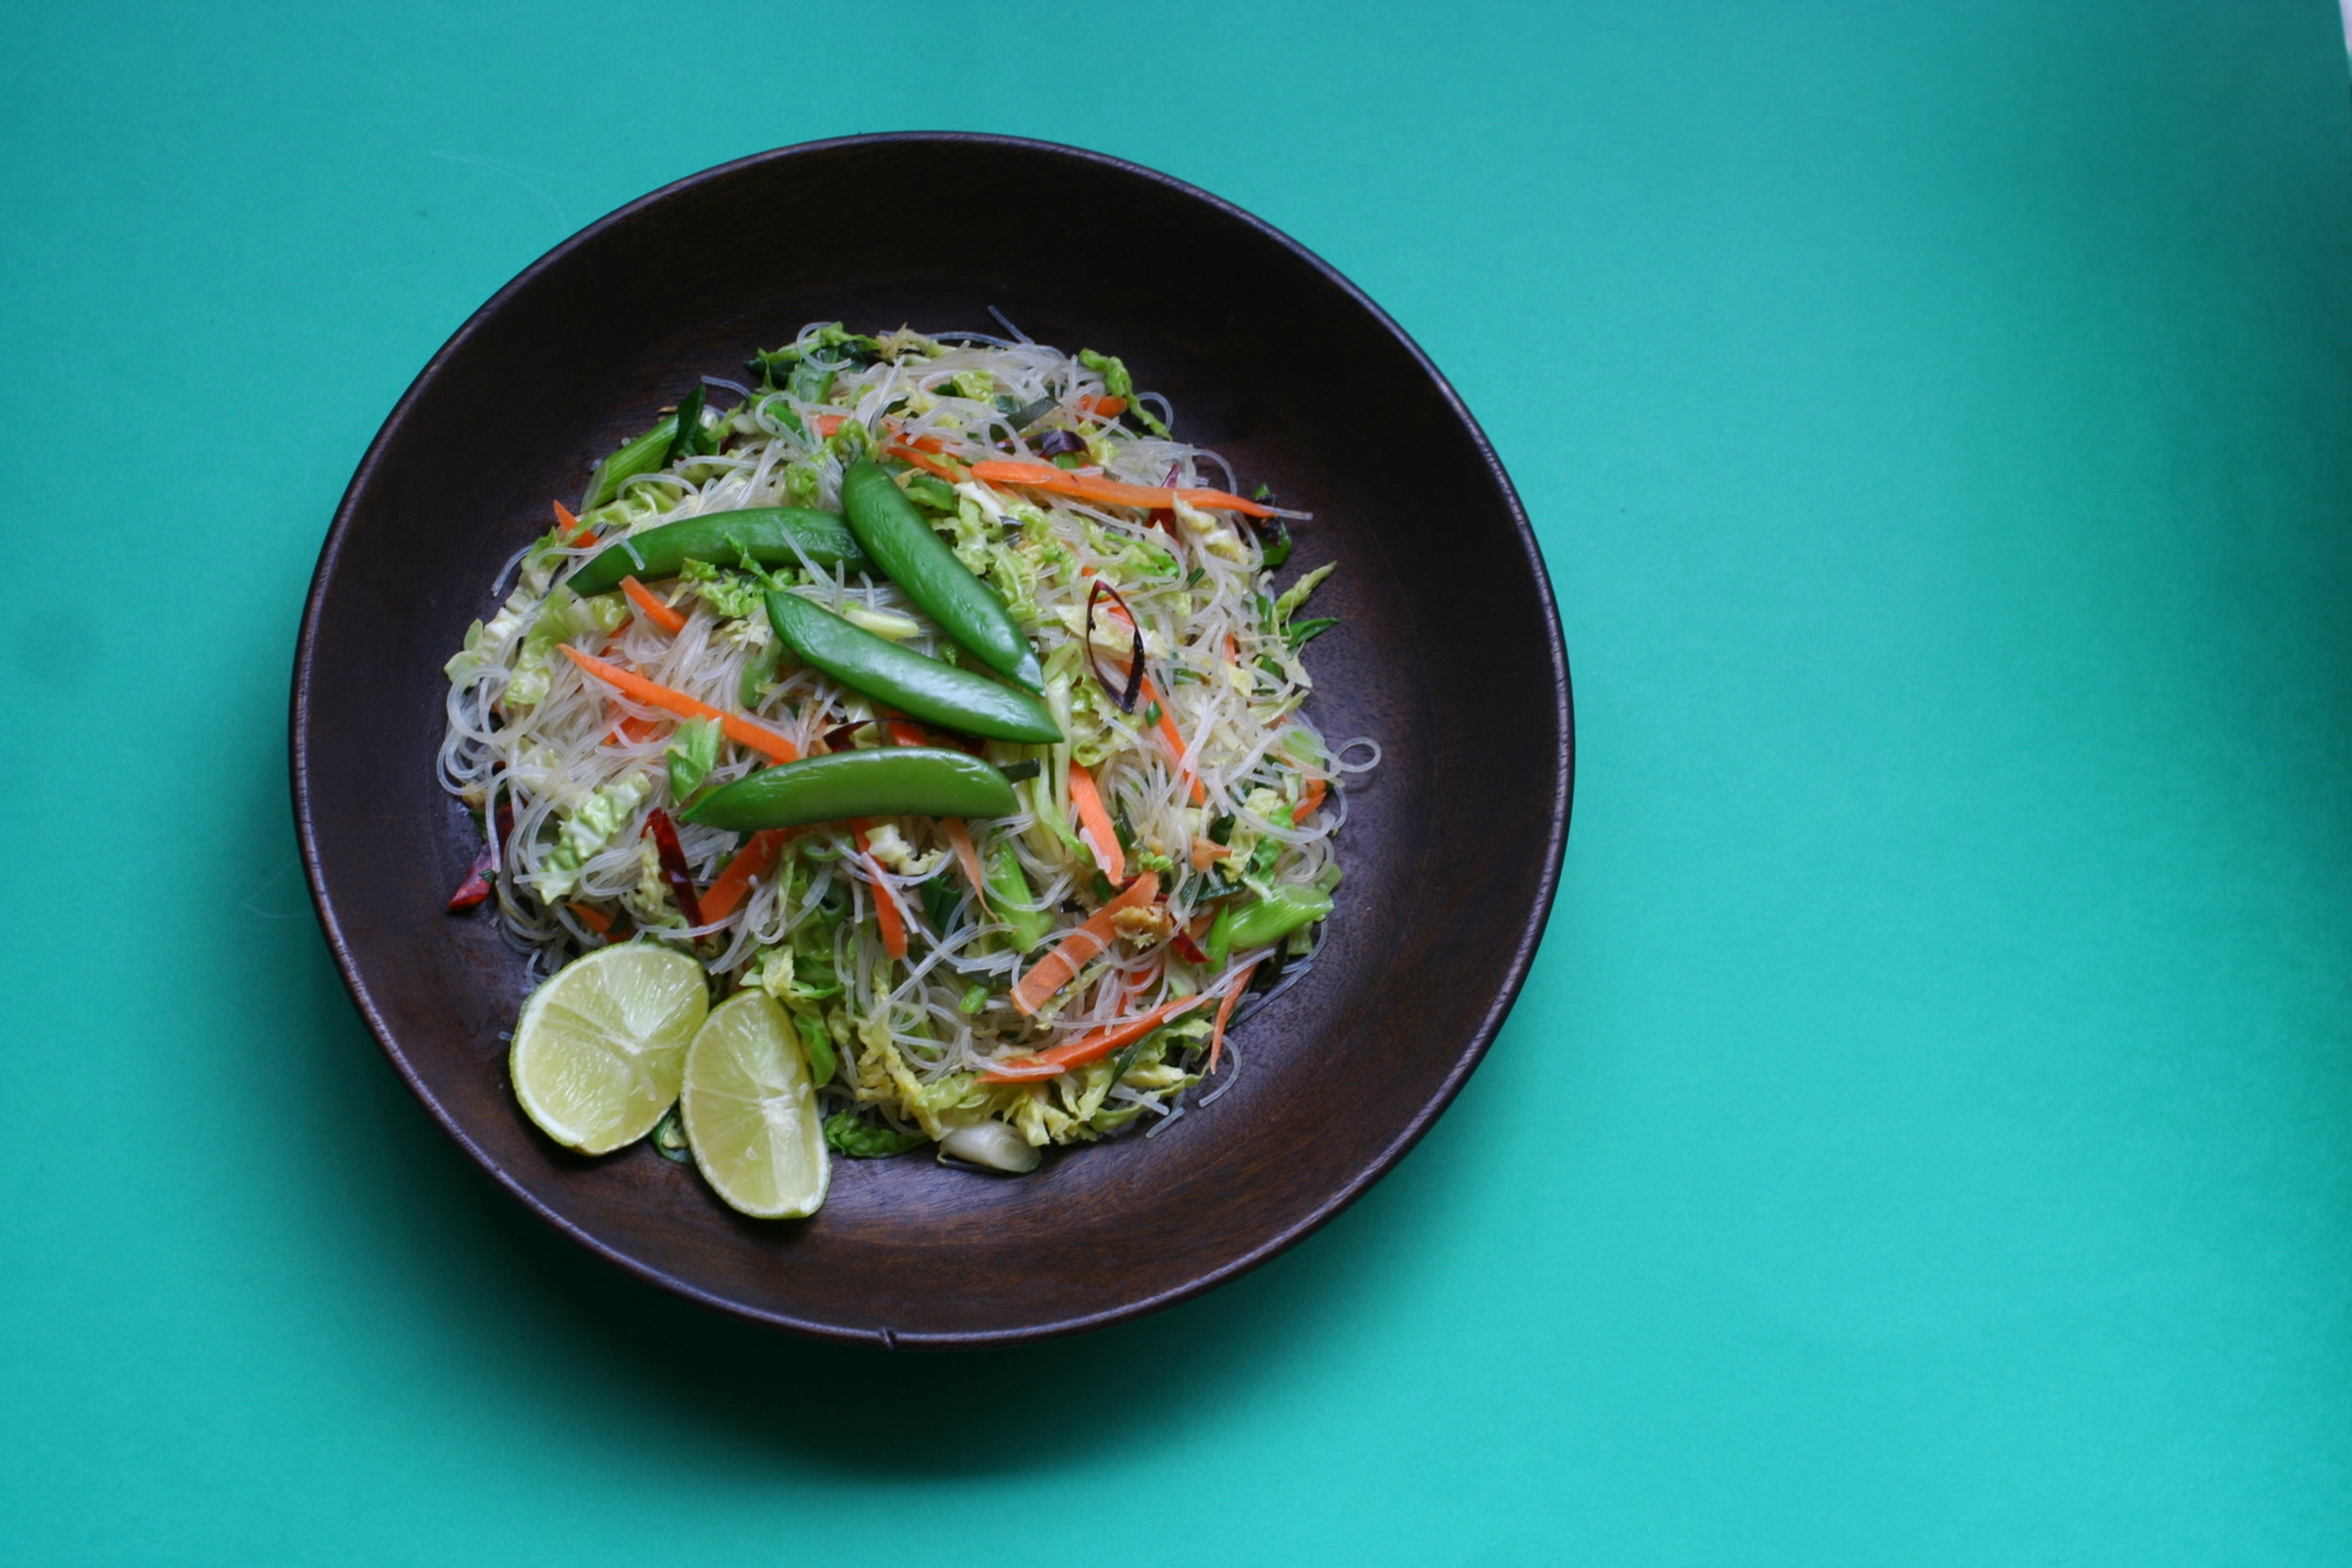 Pancit Gulay Guisado - Stir-fried rice noodles with cabbage, ginger and lime leaves